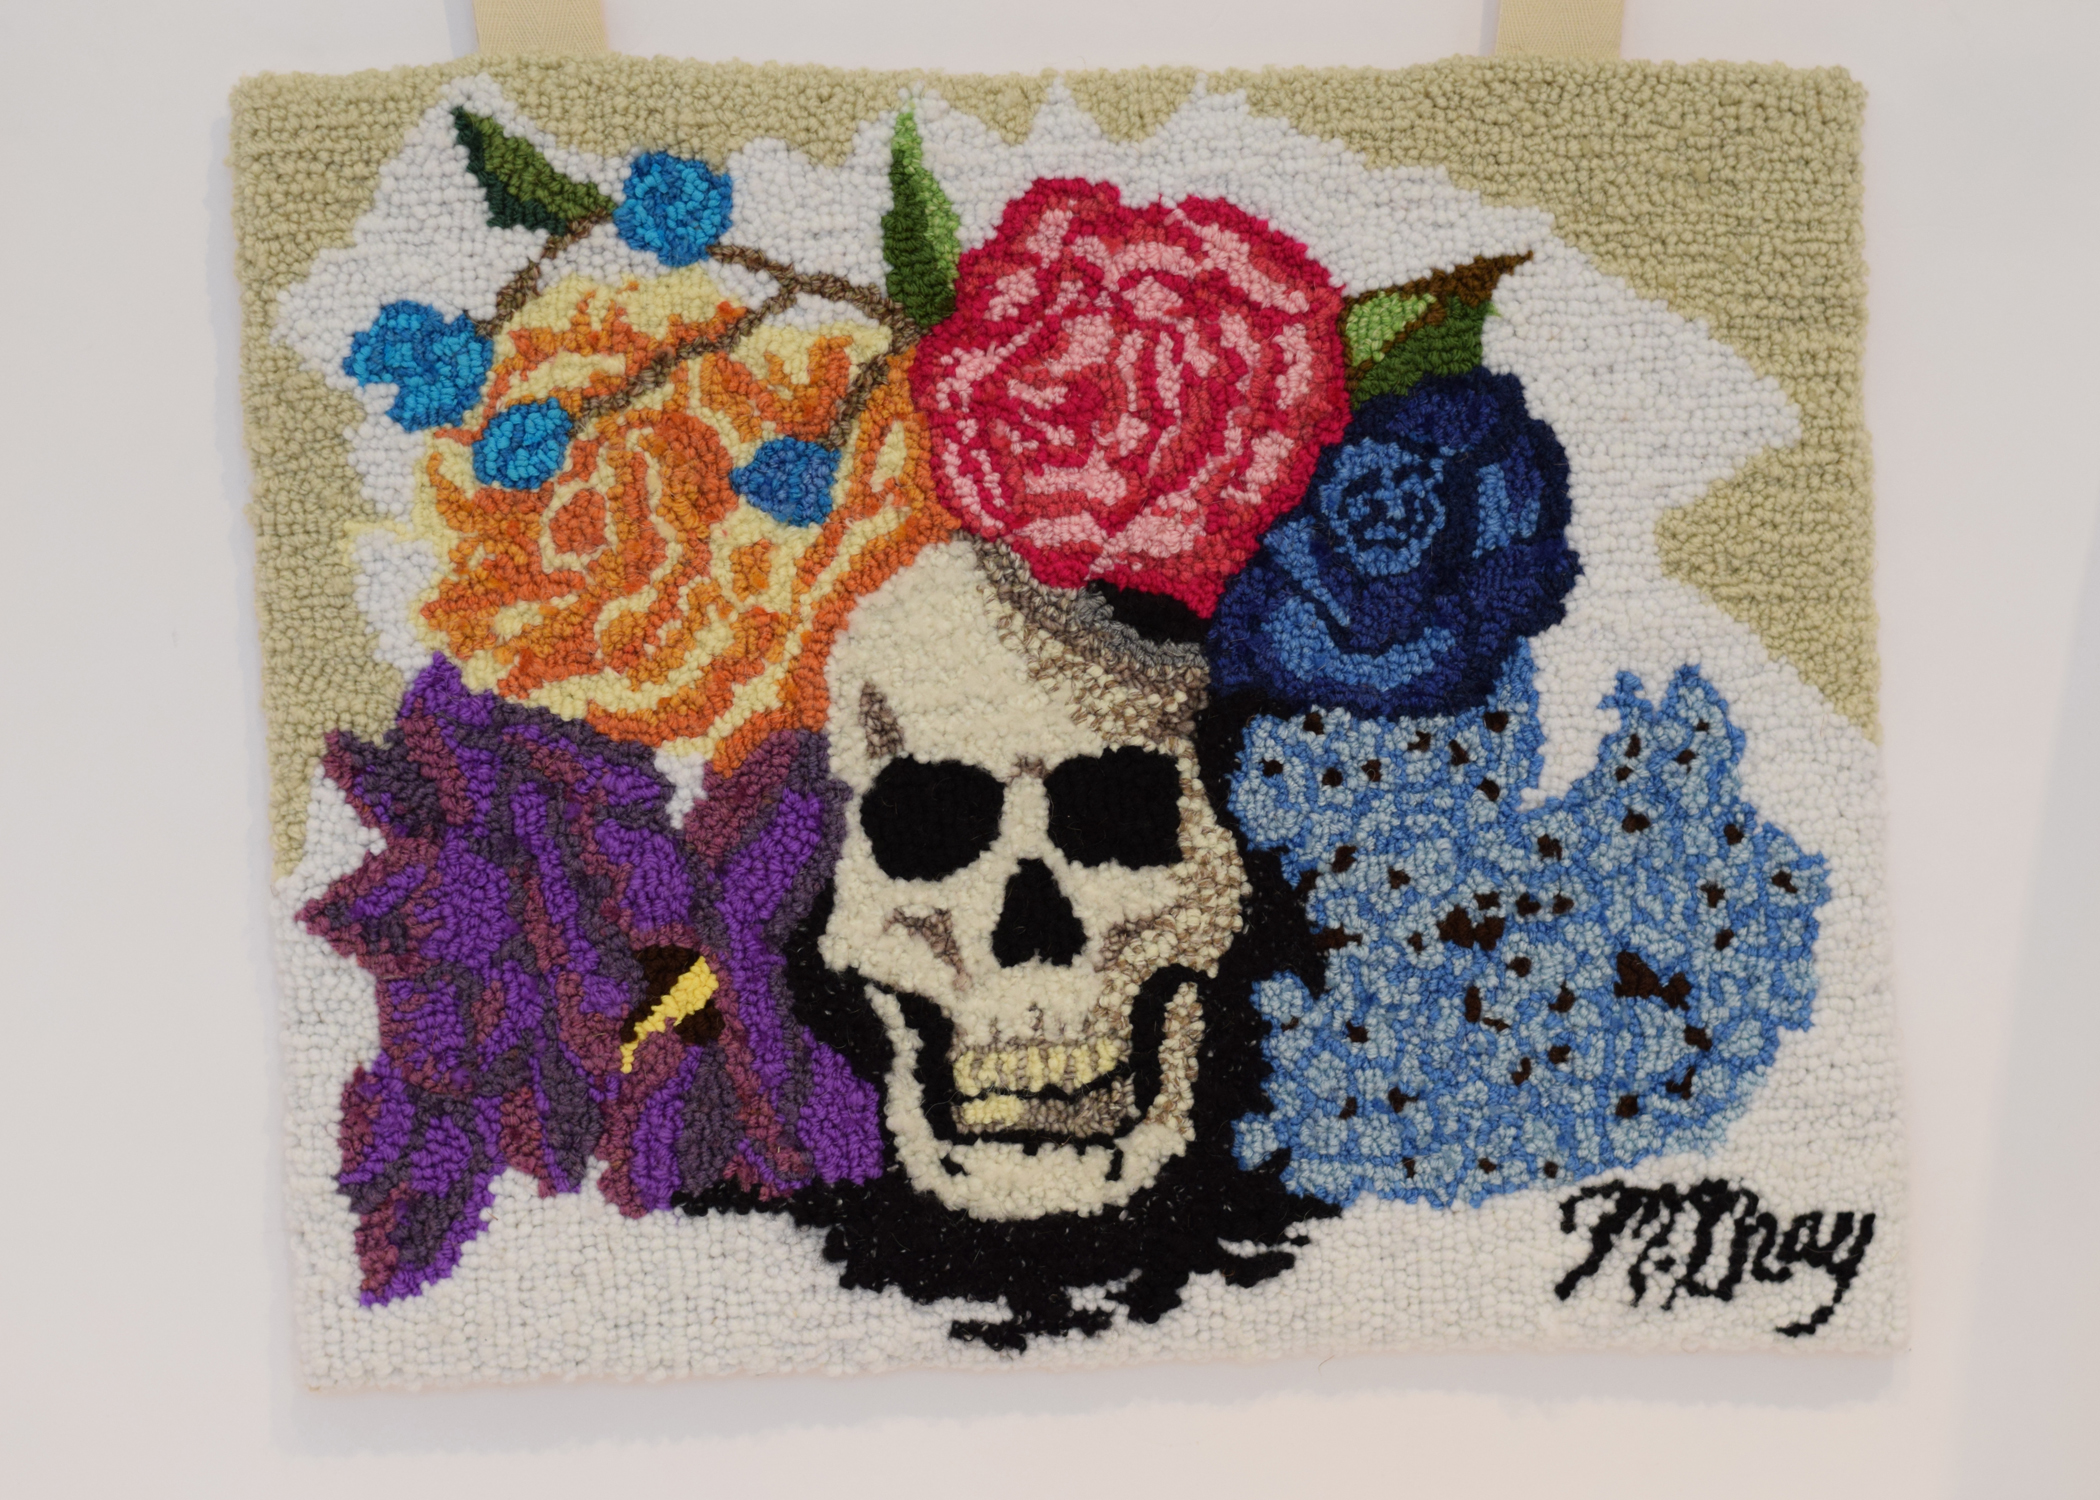 Rughooking with wool and burlap  16 in. x 20 in.